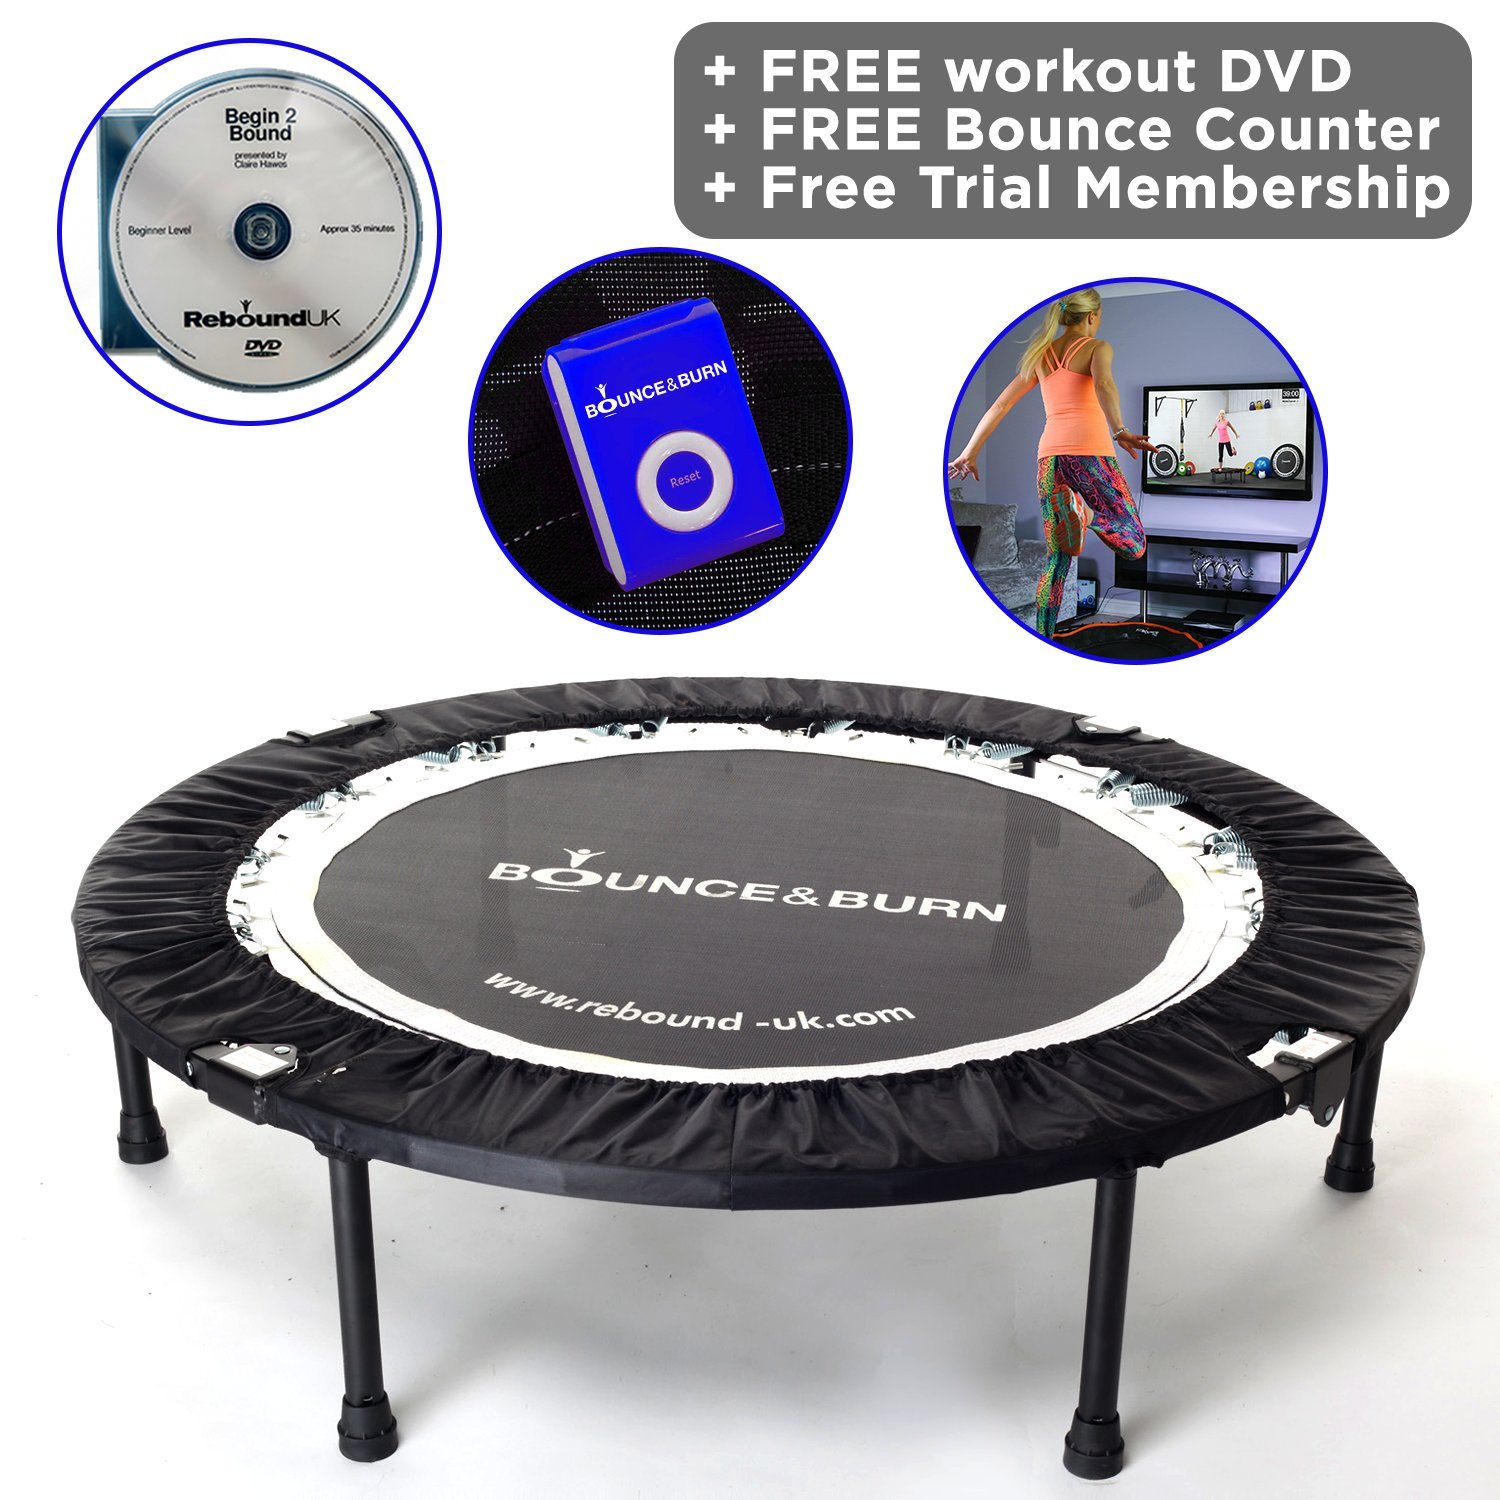 Maximus Life Bounce & Burn Foldable Indoor Mini Trampoline Rebounder for Adults. Fun Way to Lose Weight and get FIT! Includes Rebounding Workout DVD, Video Membership. Optional Handle Bar. by MXL MaXimus Life